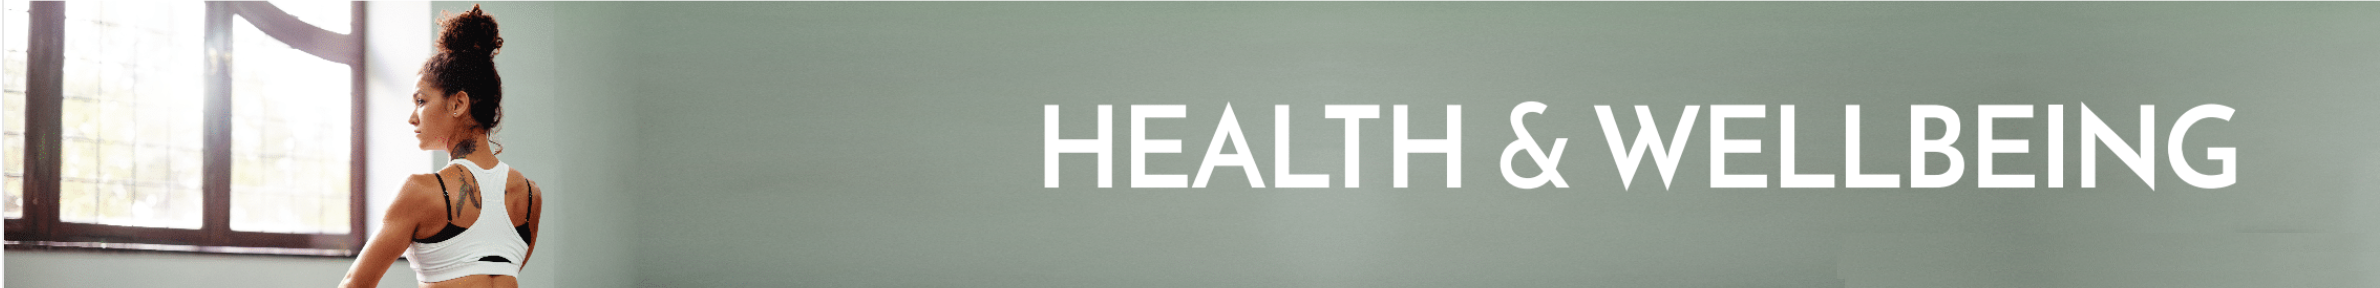 yoga naturals health and wellbeing banner